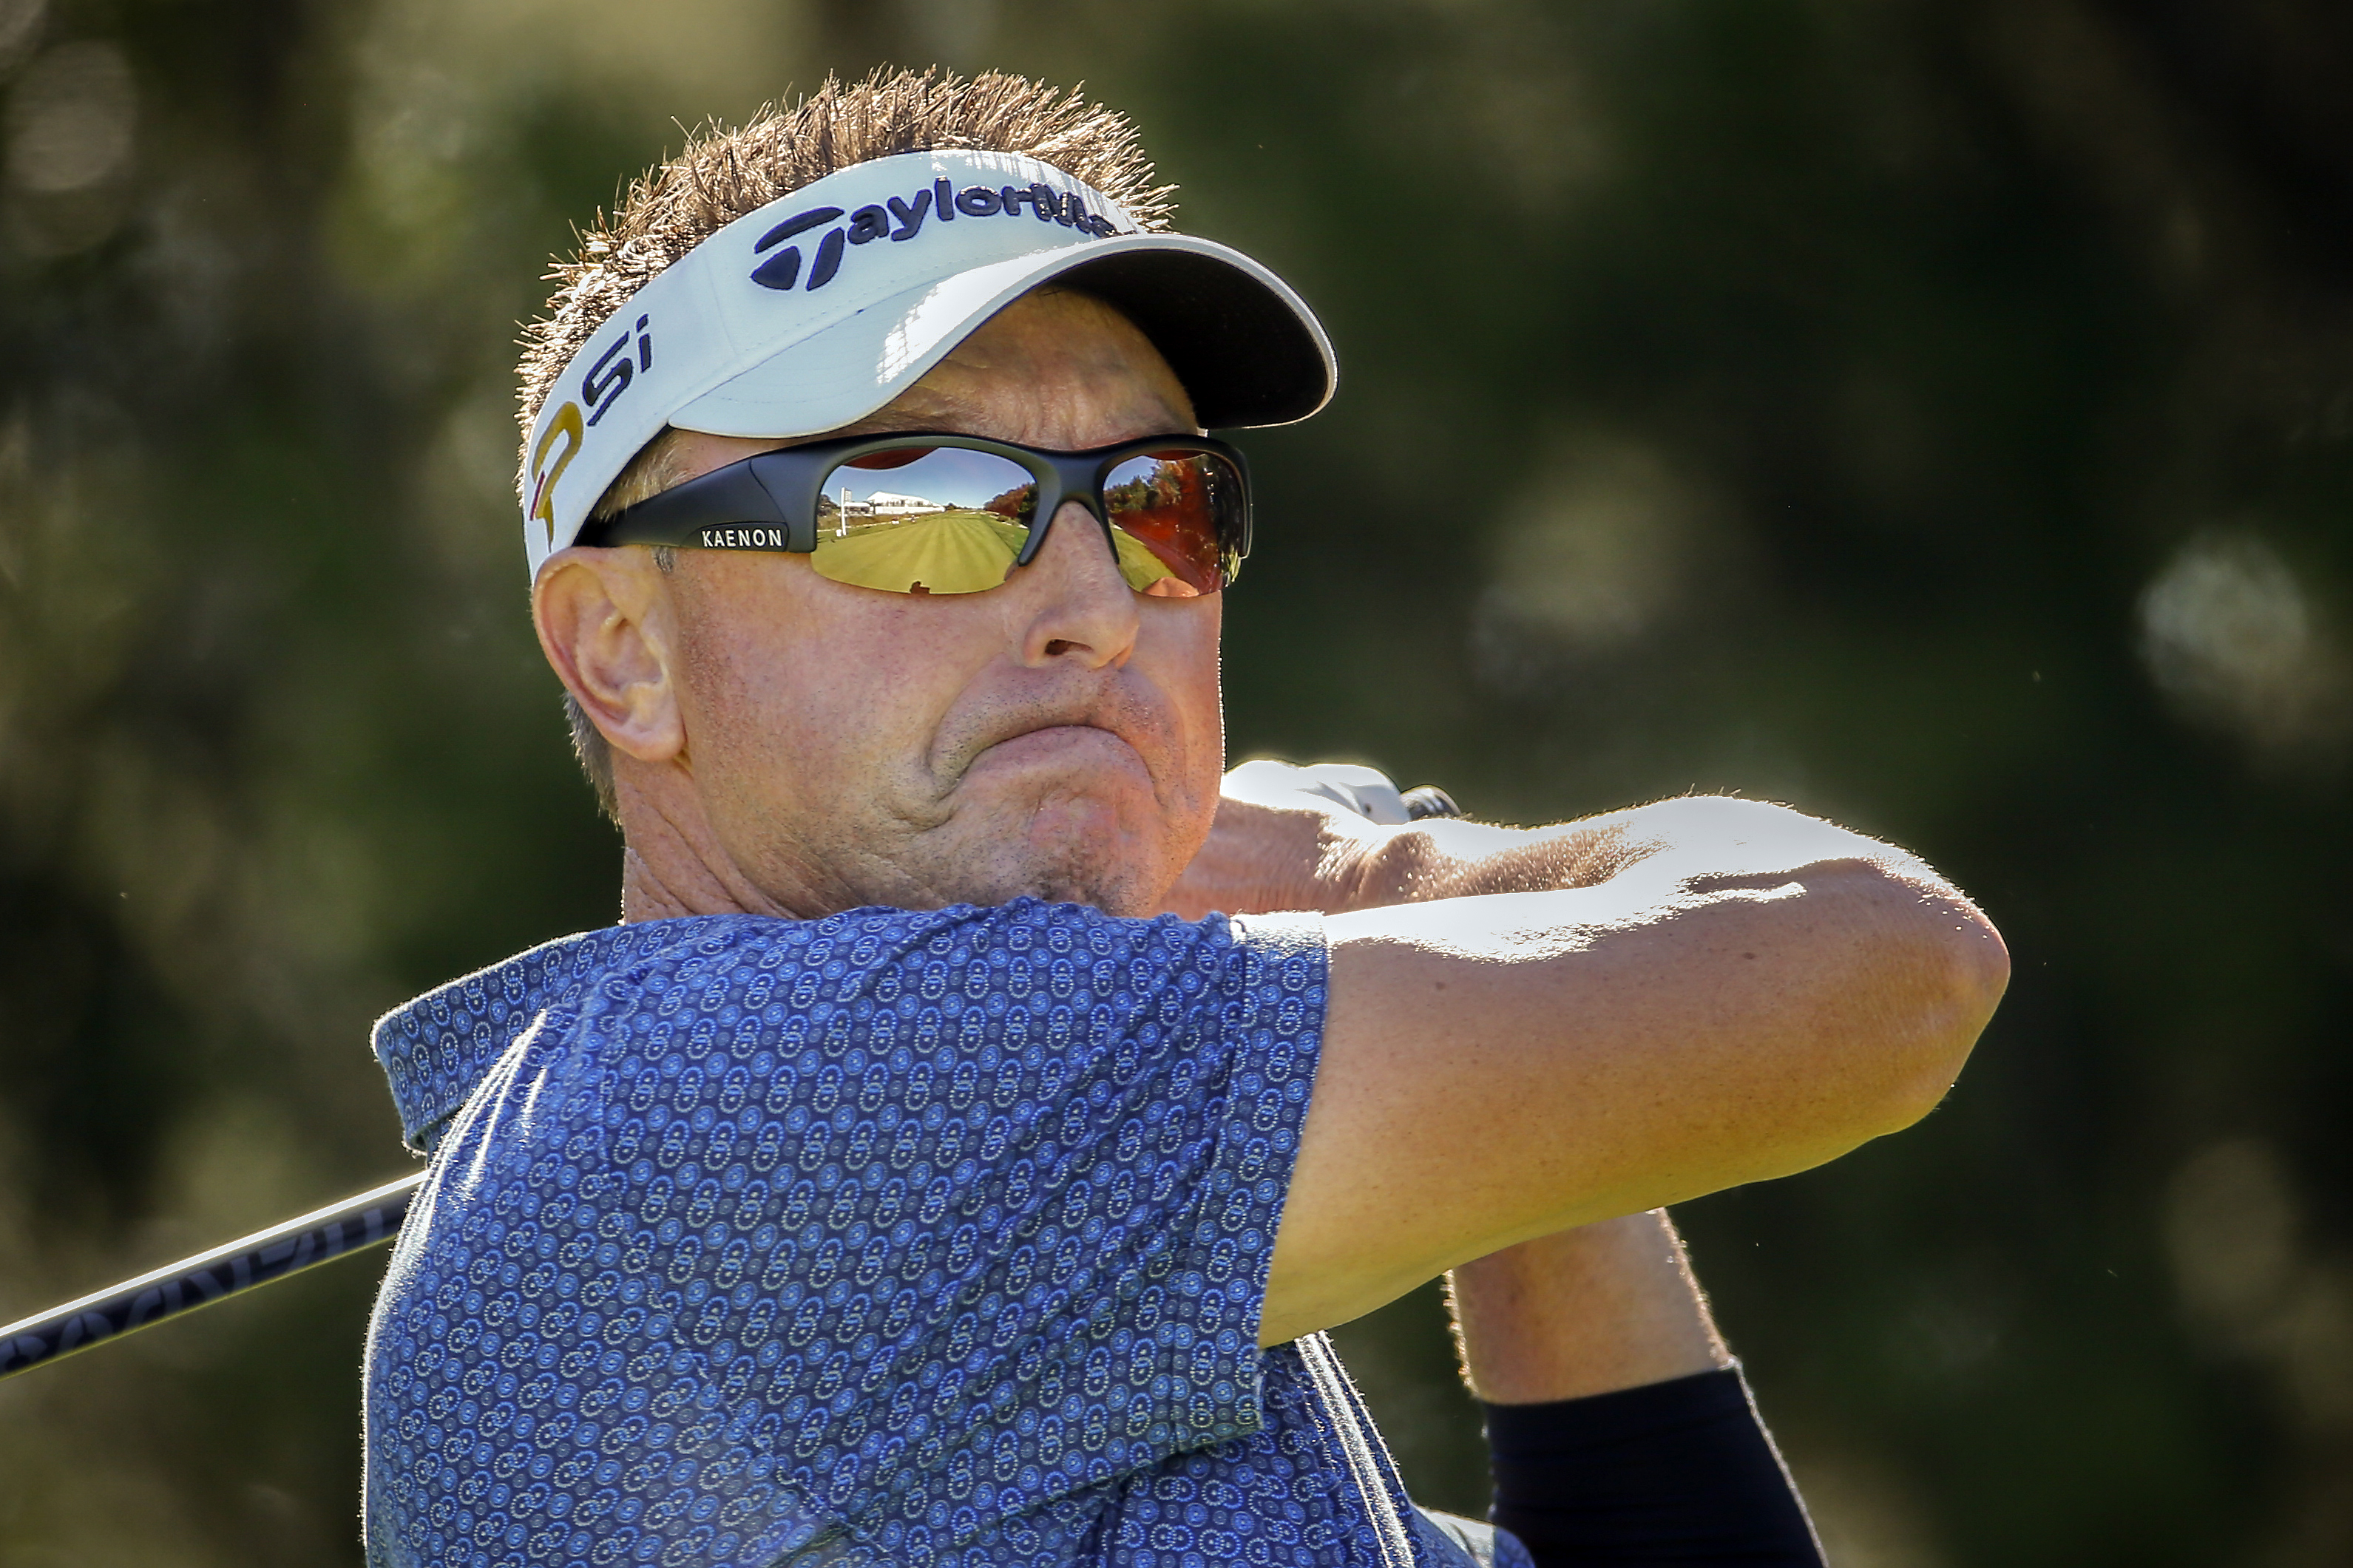 Robert Allenby, of Australia, reacts to his shot off the 10th tee on the Seaside Course at the Sea Island Golf Club during the second round at the RSM Classic golf tournament, Friday, Nov 20, 2015, in St. Simons Island, Ga. (AP Photo/Stephen B. Morton)